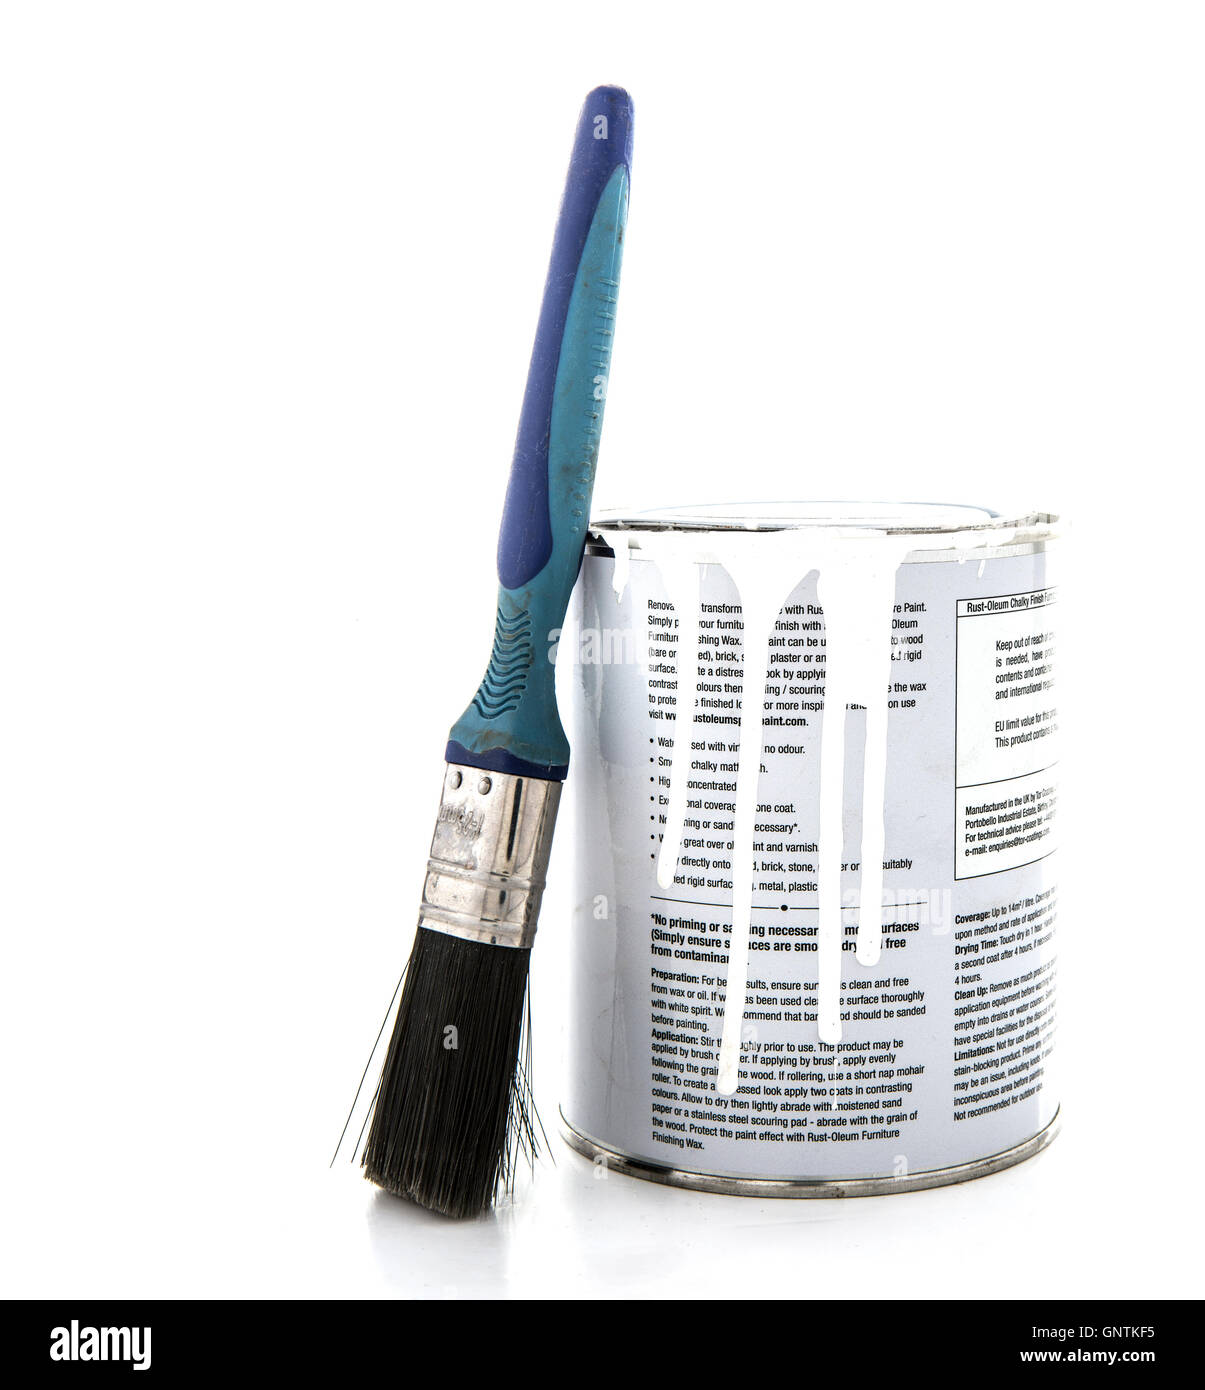 Tin of Rust-oleum Chalky Finish Furniture Paint with Brush on a White Background - Stock Image